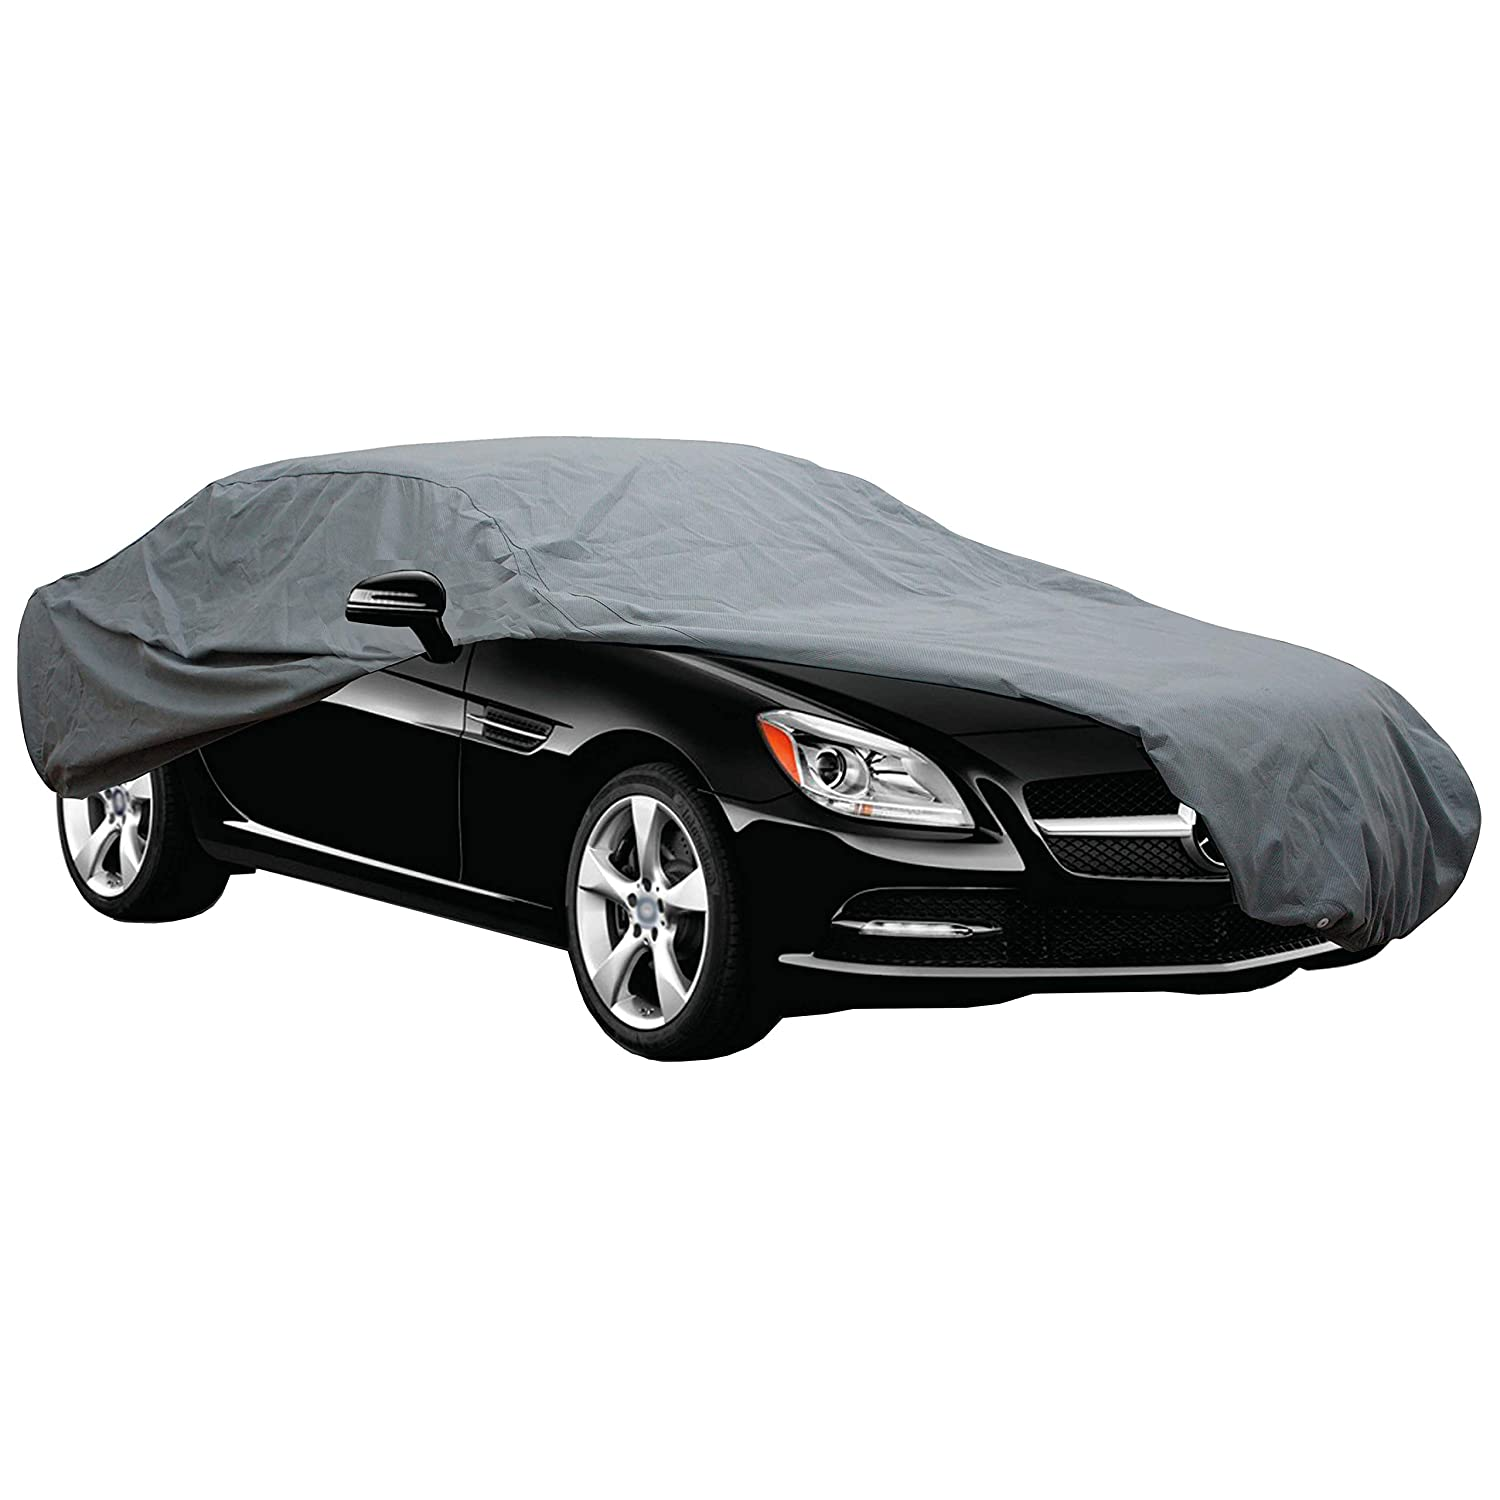 SUMEX COVERXL XL Ultimate Weather Protection Breathable Waterproof Car Cover 530 x 175 x 120 cm